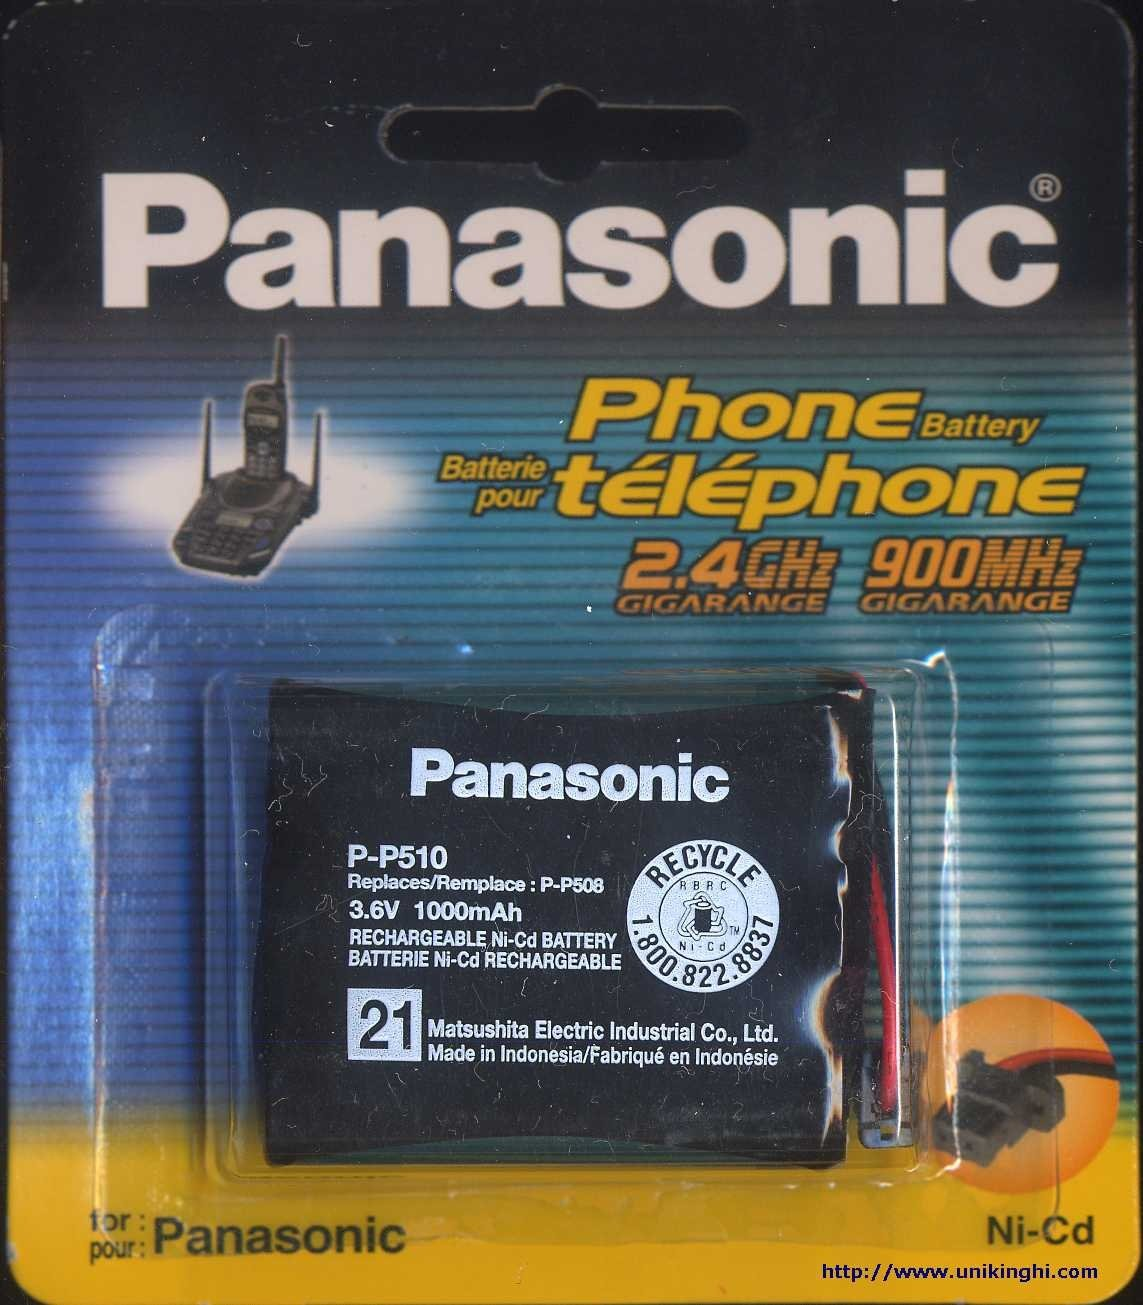 Panasonic P-P510A Replacement Rechargeable Battery